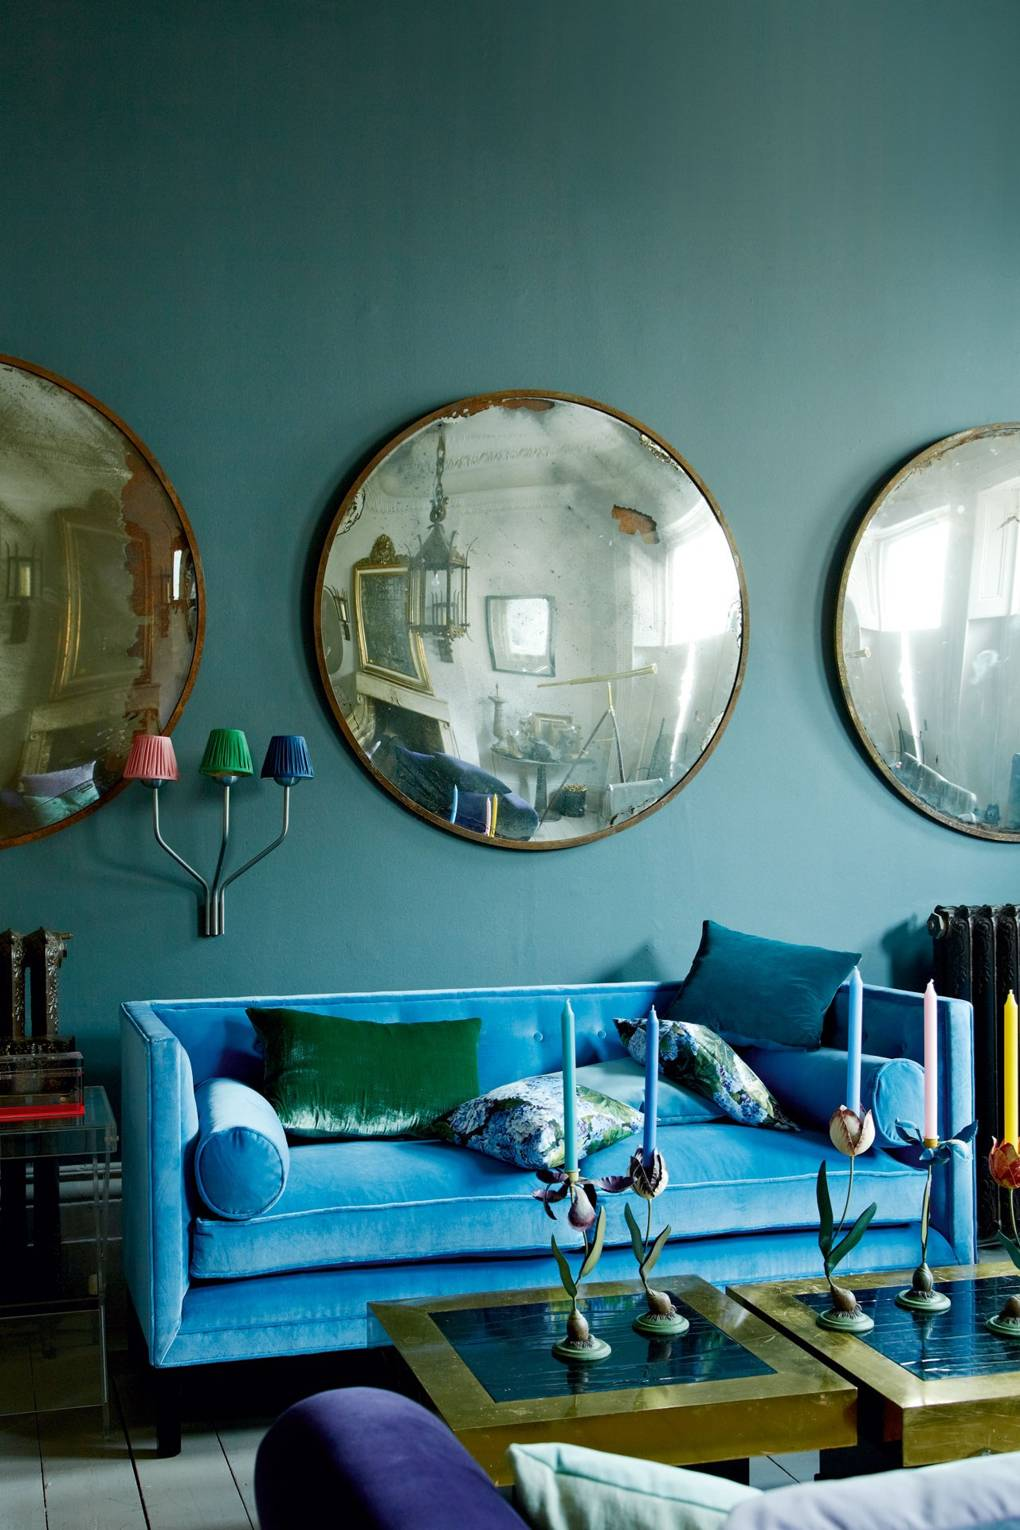 IMAGE: via House and Garden feat. paint color 'Downpipe' from Farrow and Ball